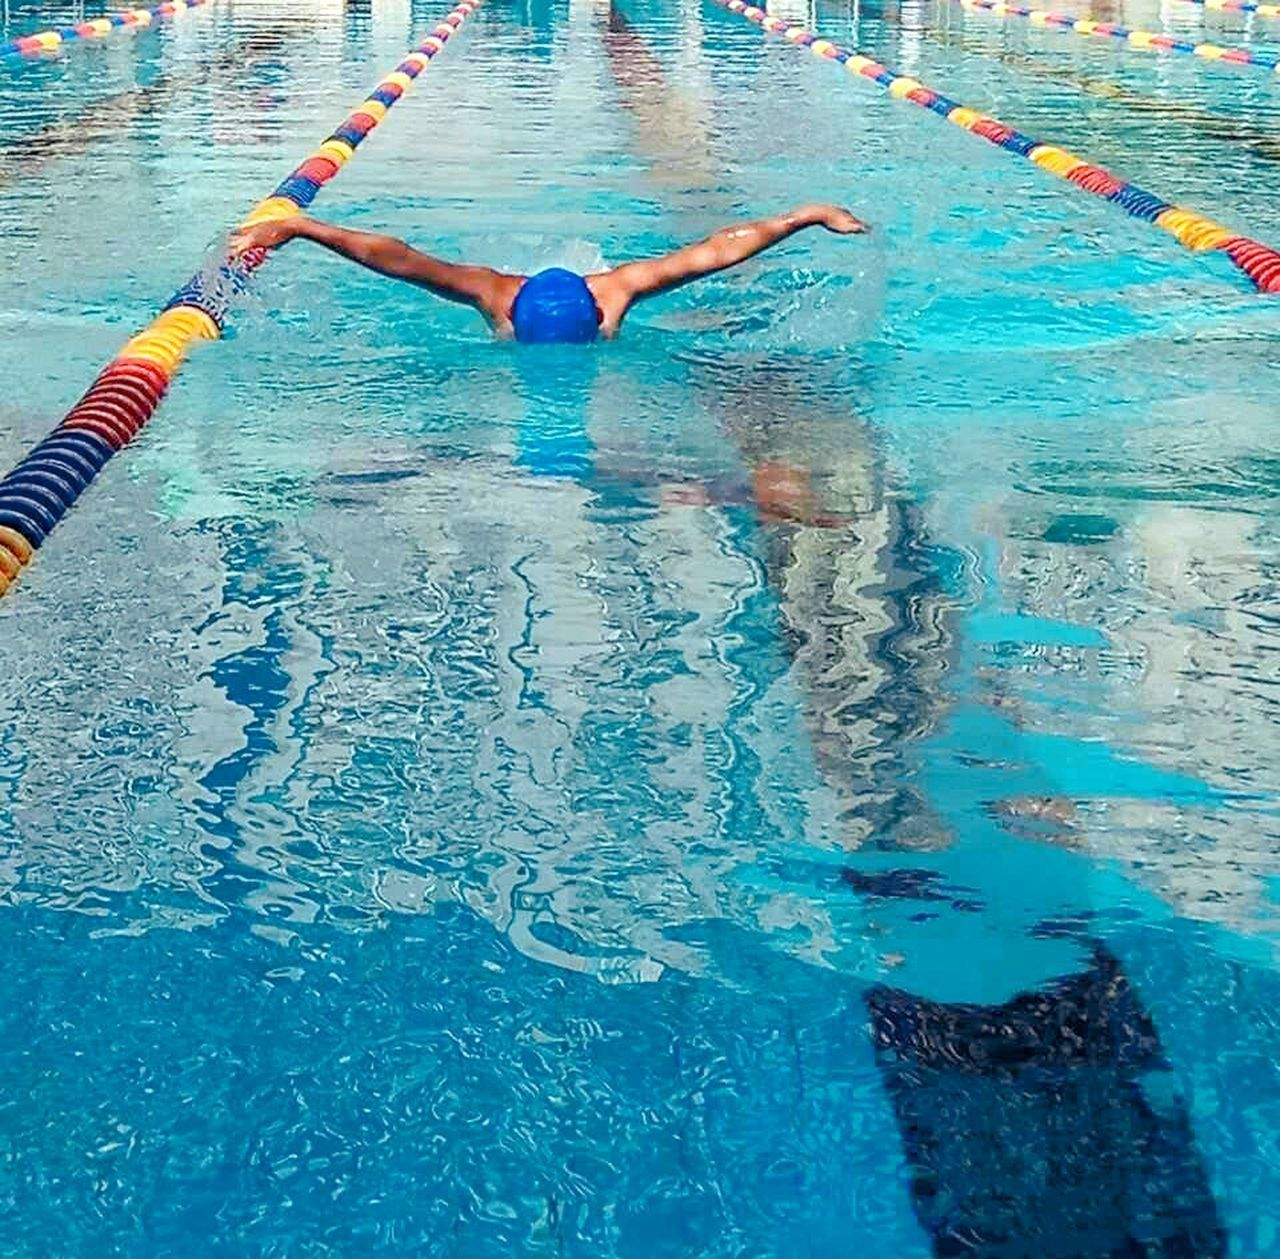 swimming pool, water, swimming, real people, young adult, vitality, swimming lane marker, one person, day, outdoors, young women, exercising, full length, sport, women, competition, competitive sport, athlete, adult, adults only, people